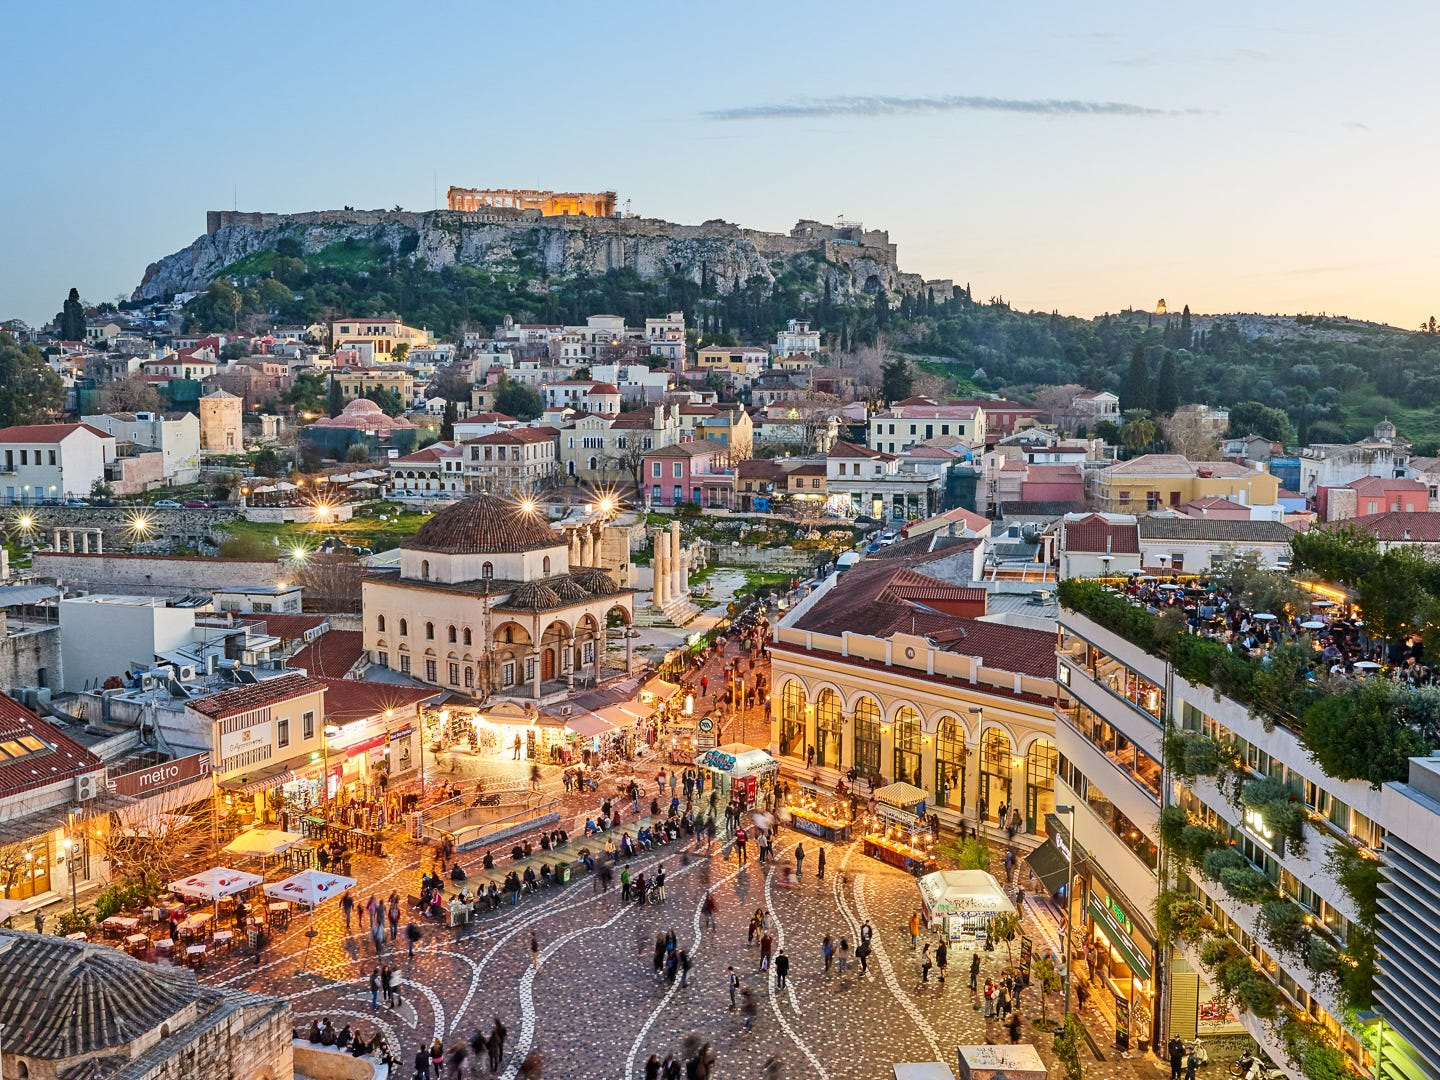 10. Athens, Greece. Total cost per day: $76.38. You can score round-trip airfare to the capital of Greece for only $510 on average, which is one of the cheapest international flights on GOBankingRates' list. Notable landmarks in Athens include the Parthenon and other ancient ruins of the Acropolis  — perfect for history junkies. Hotels will cost you an average of $36 per night, and you can expect to pay a little over $11 for a meal at an inexpensive restaurant.